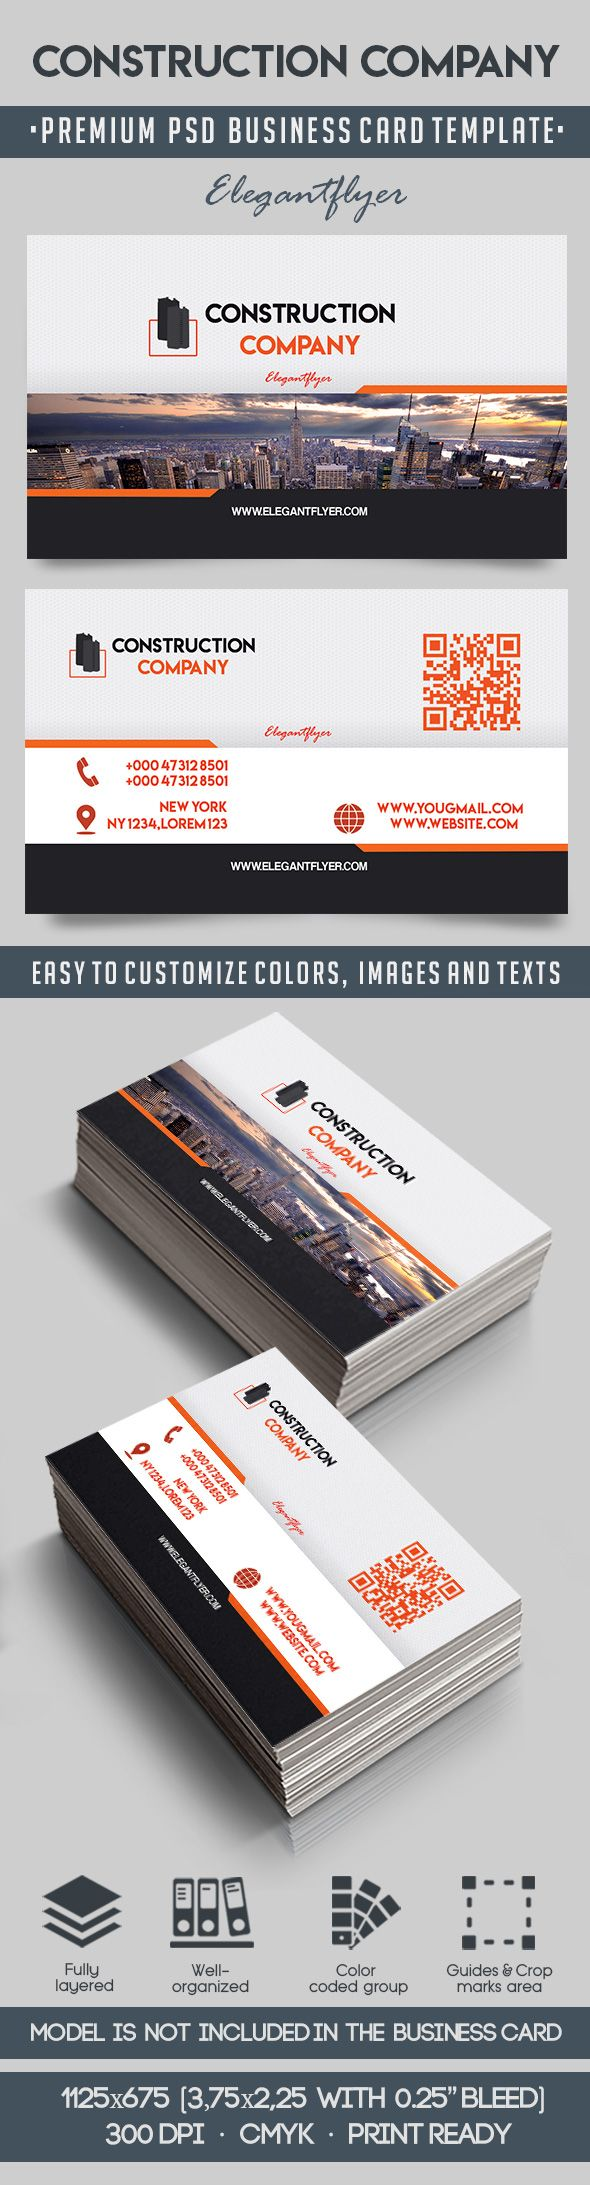 Construction company premium business card templates psd by construction company premium business card templates psd magicingreecefo Images